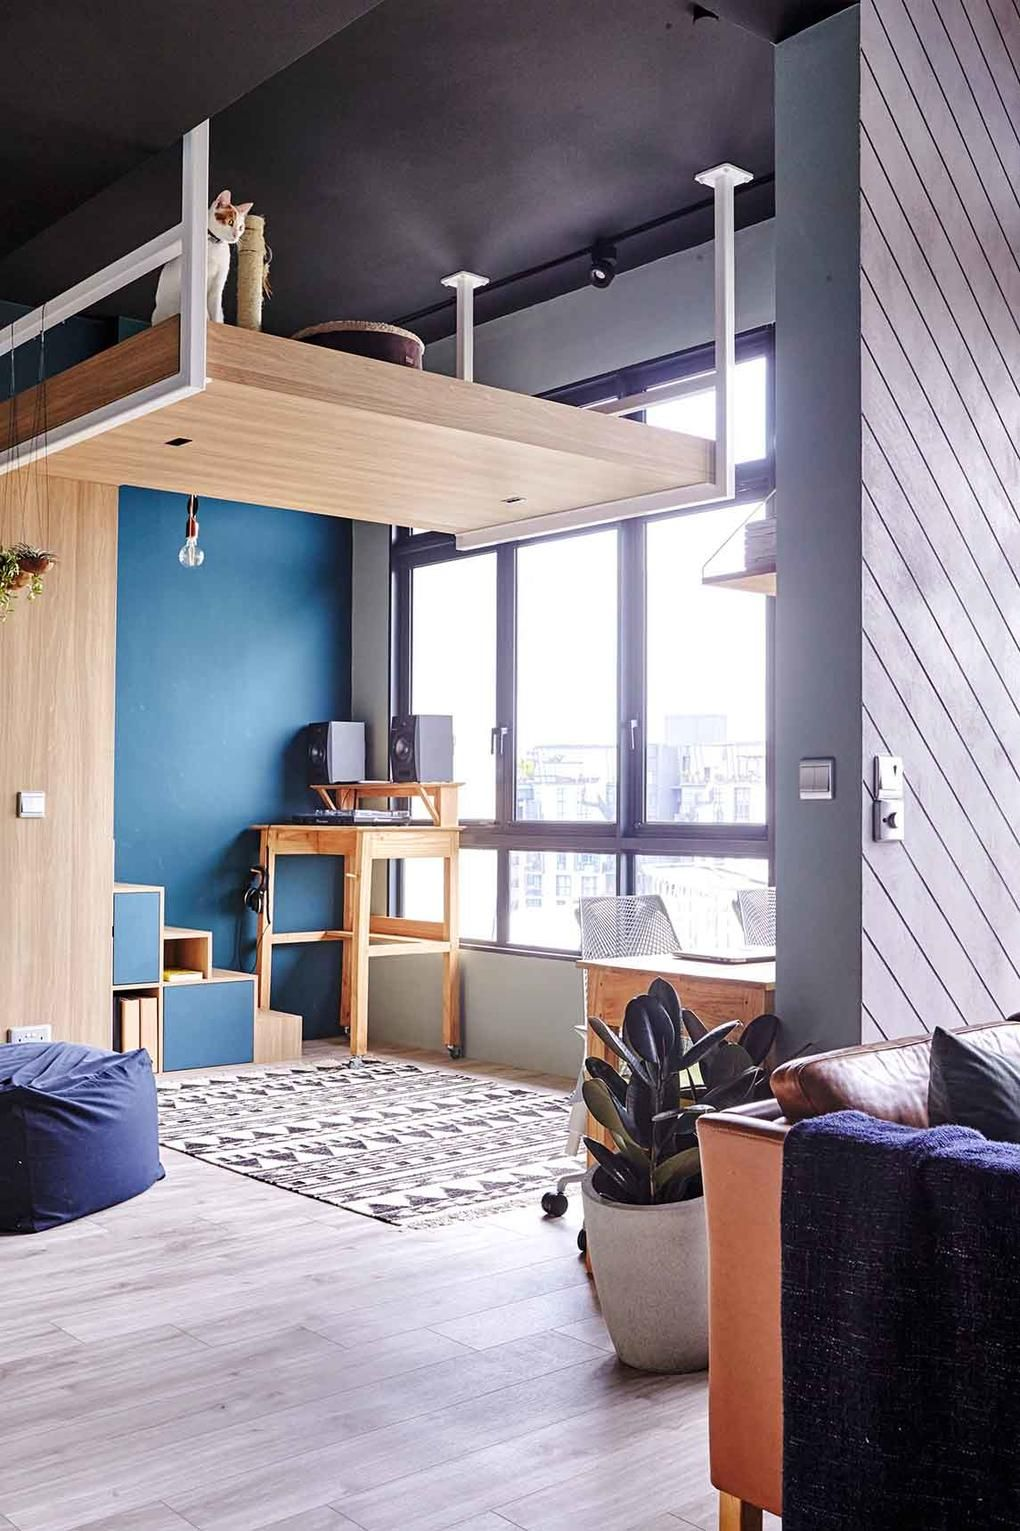 House Tour A Minimalist Nordic Style Two Bedroom Condo Apartment With Green And Blue Shades